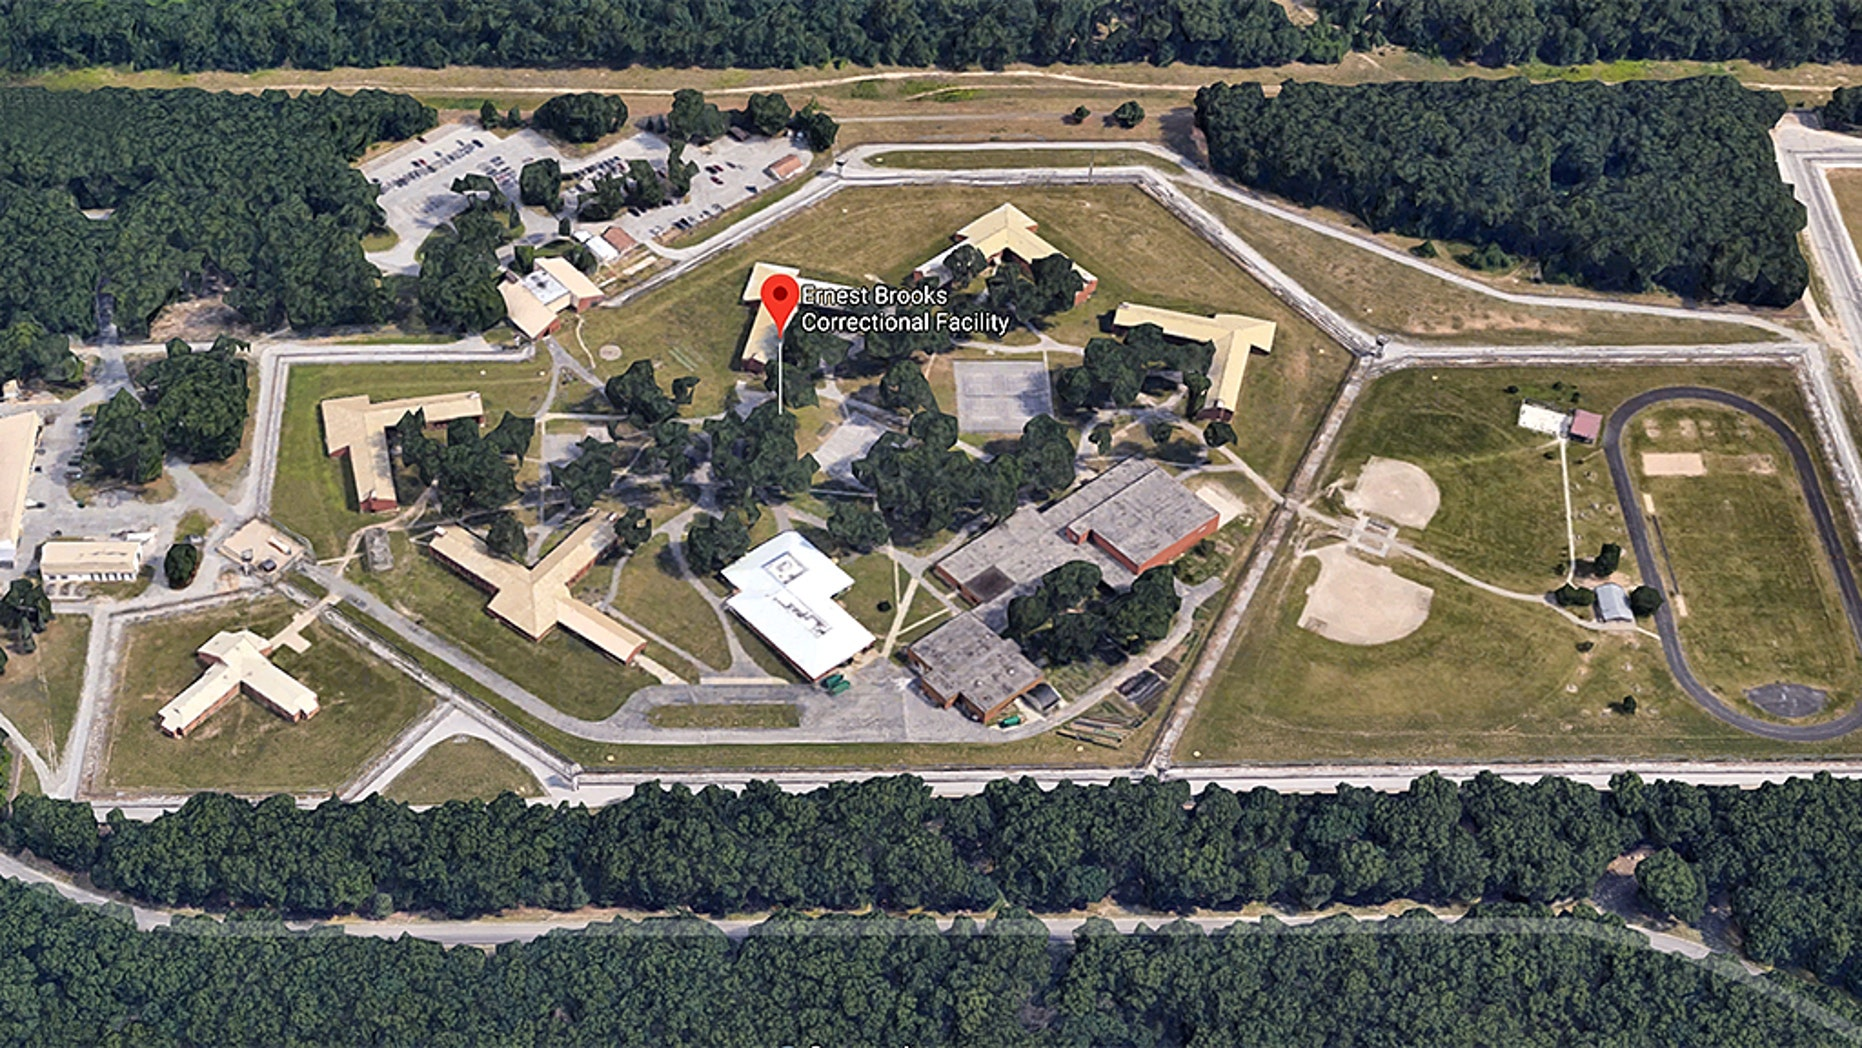 The unidentified guard was a 20-year veteran at Earnest C. Brooks Correctional Facility.